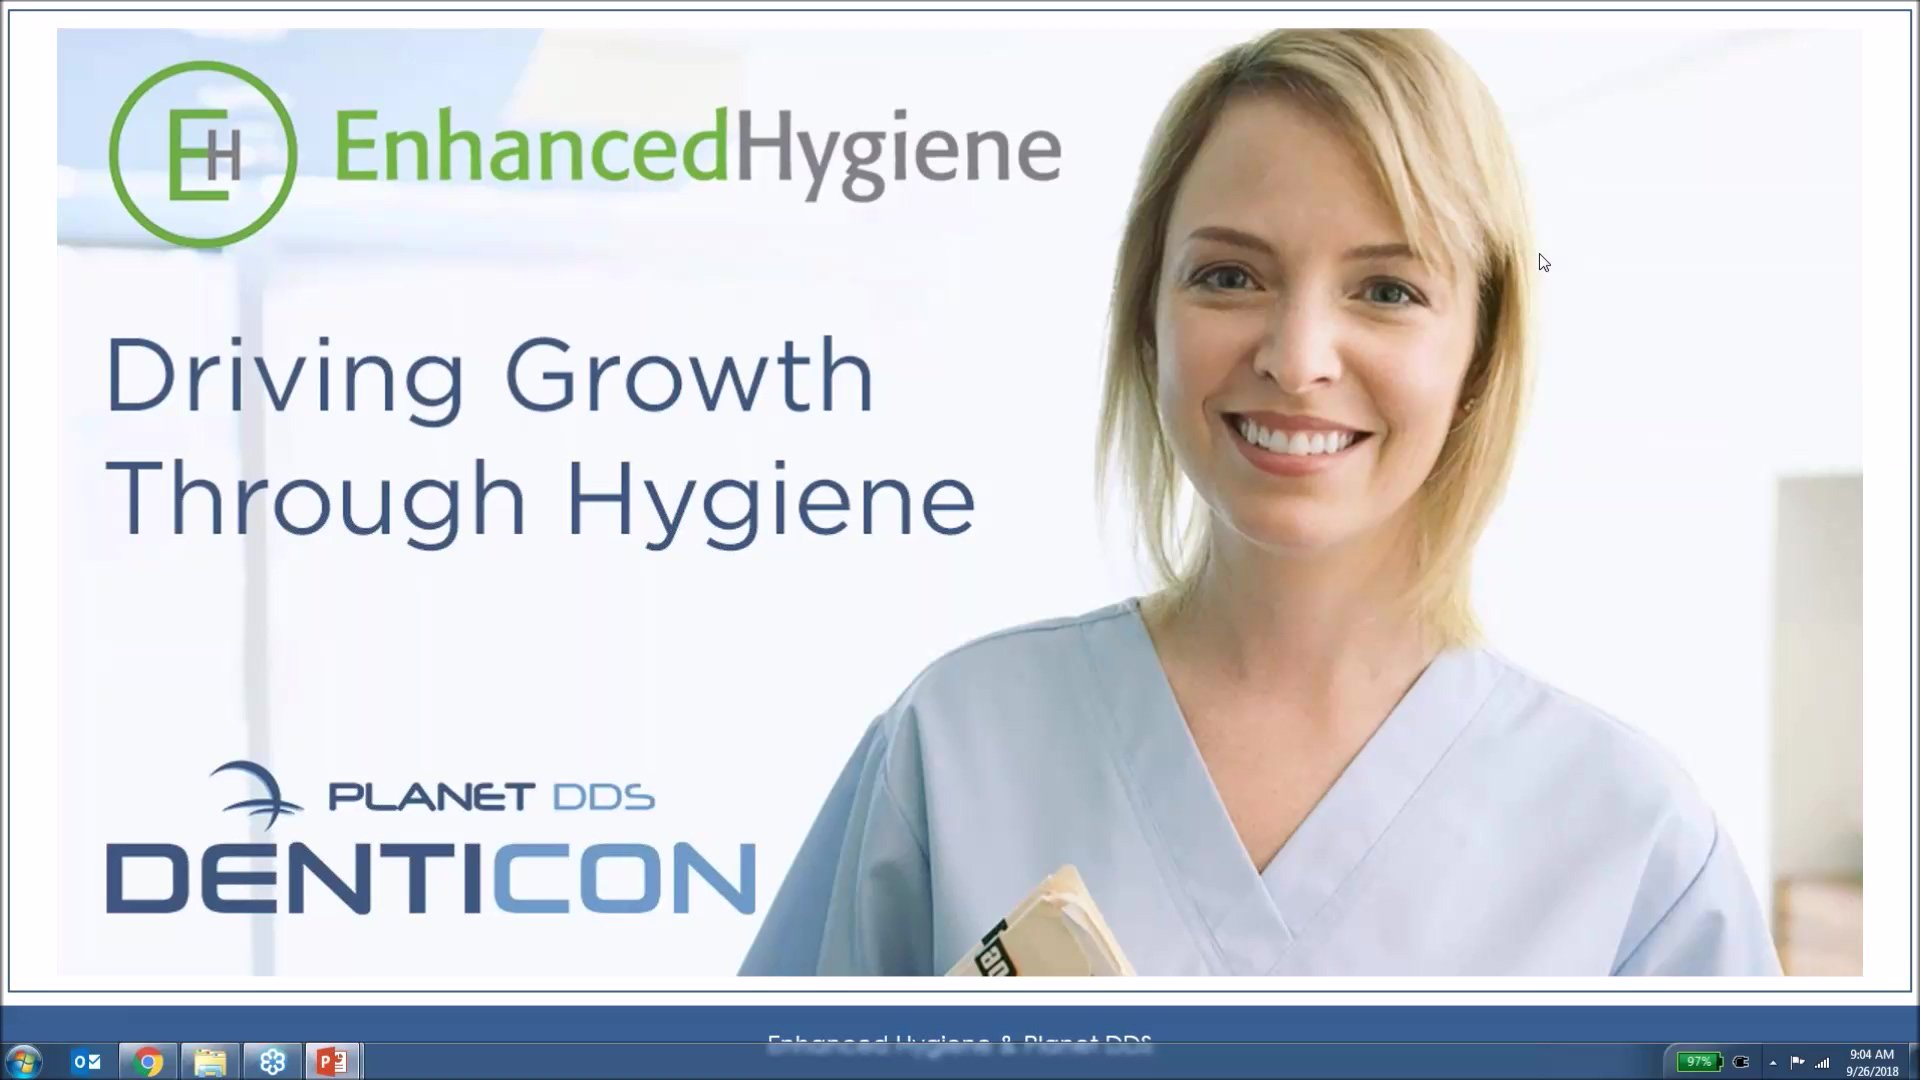 Driving Growth Through Hygiene